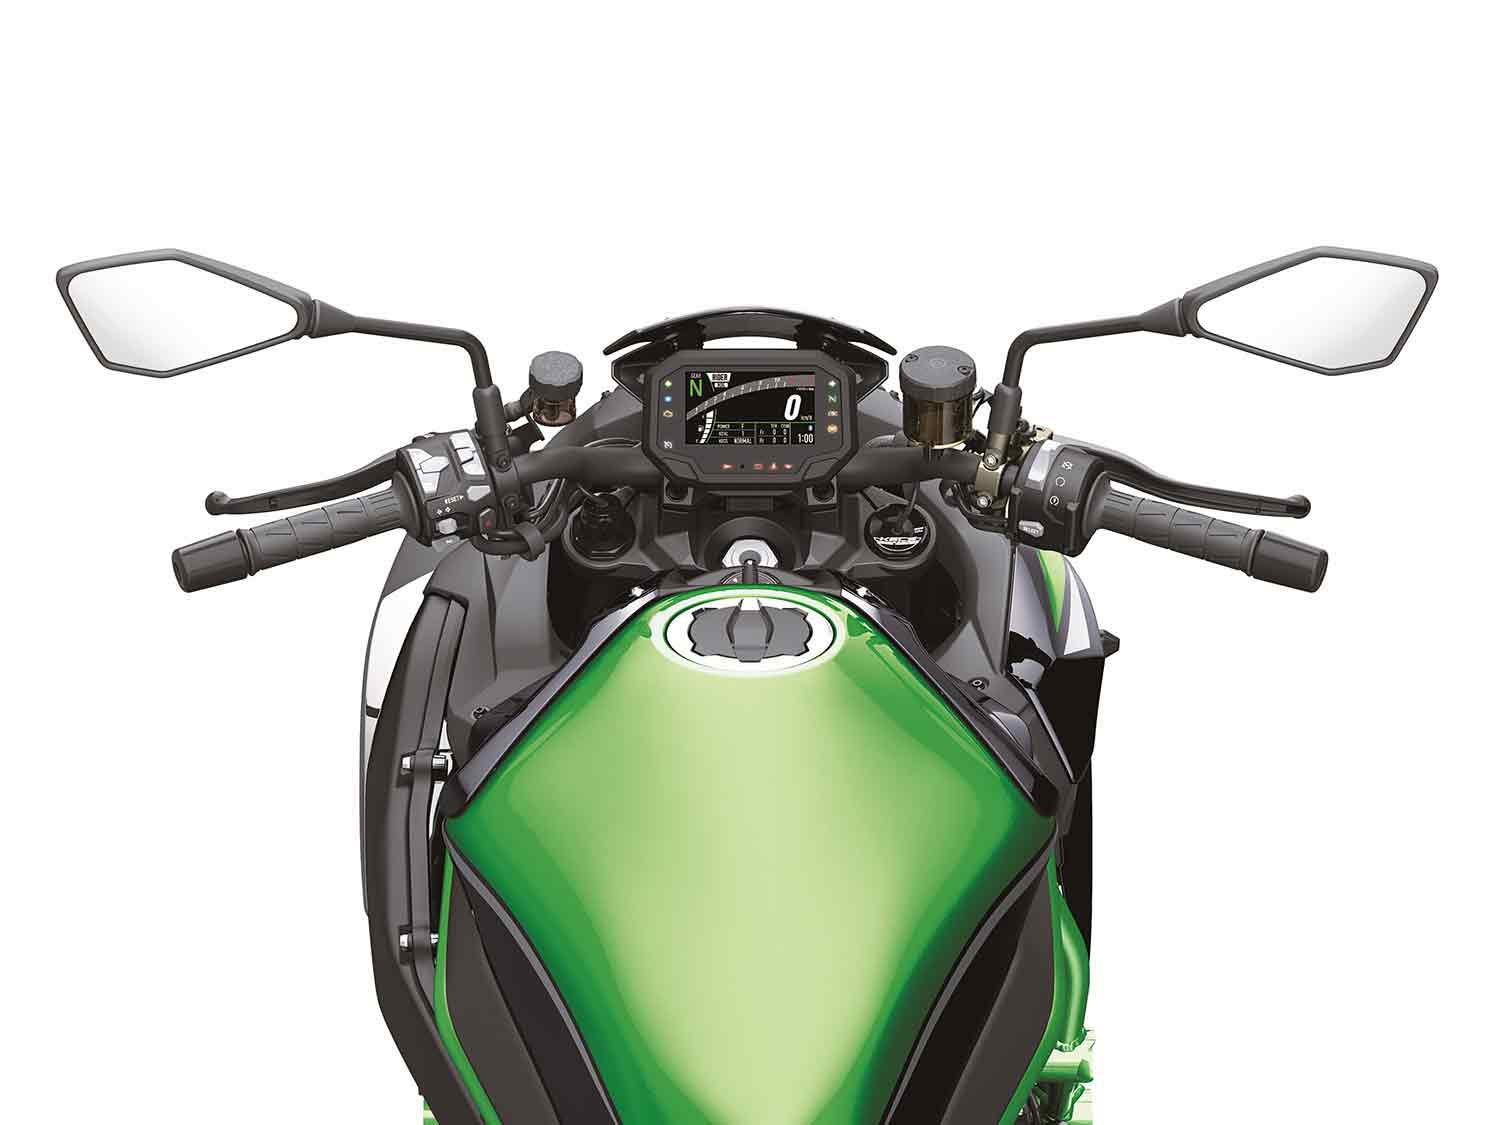 In SE guise, the Z H2 comes in Golden Blazed Green paired with Metallic Diablo Black.